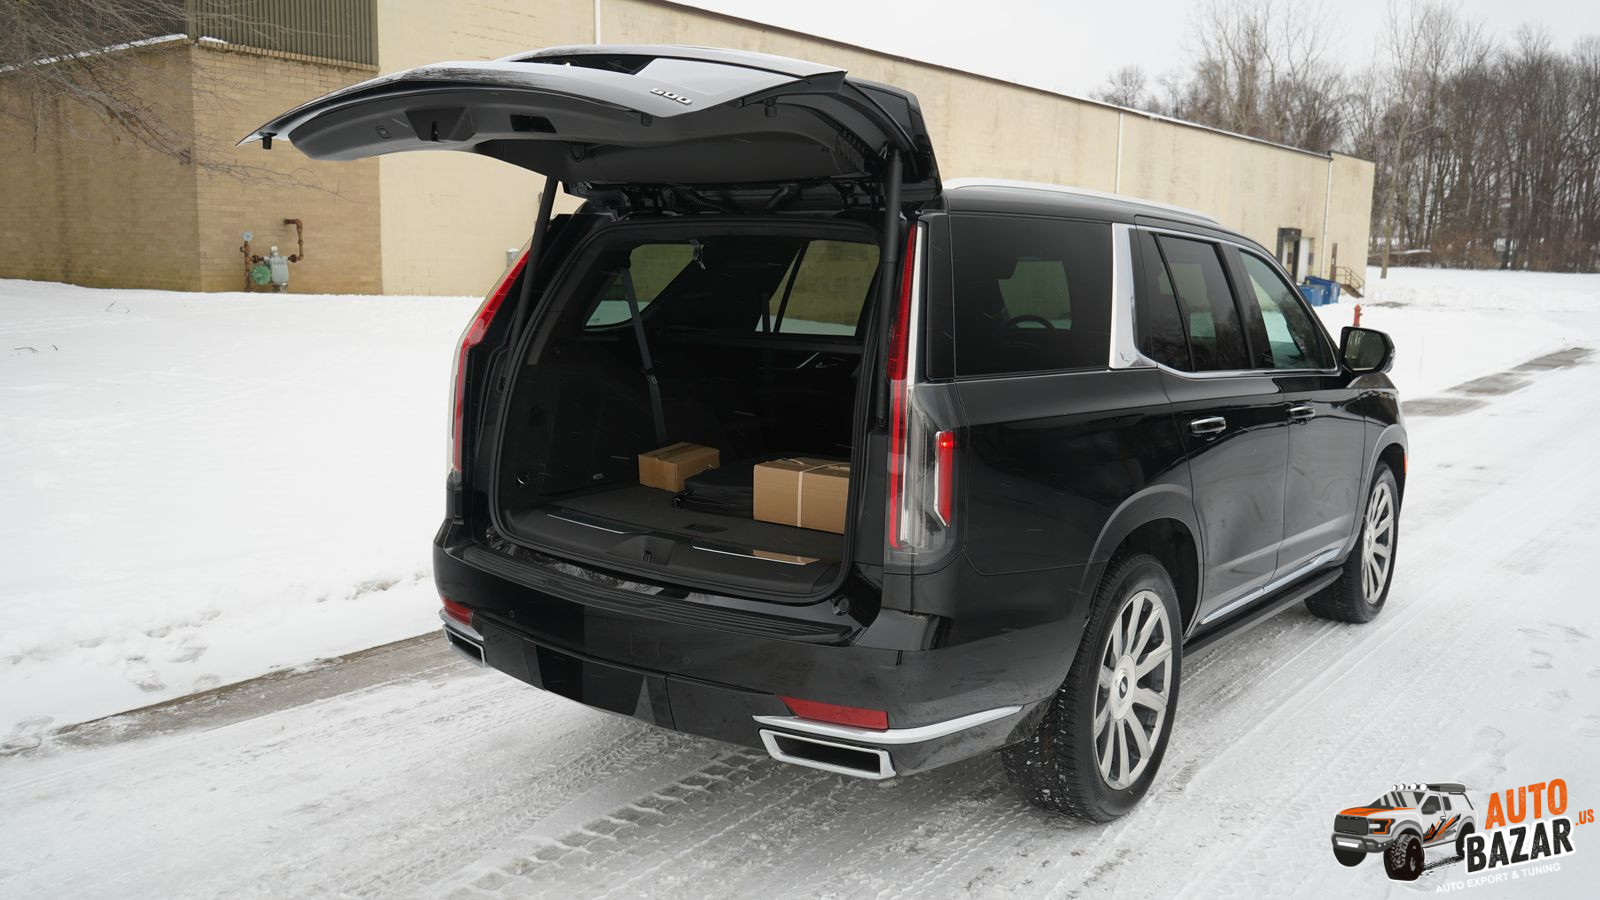 /storage/inventories/1103/2021 Cadillac Escalade 1103 (14).JPG